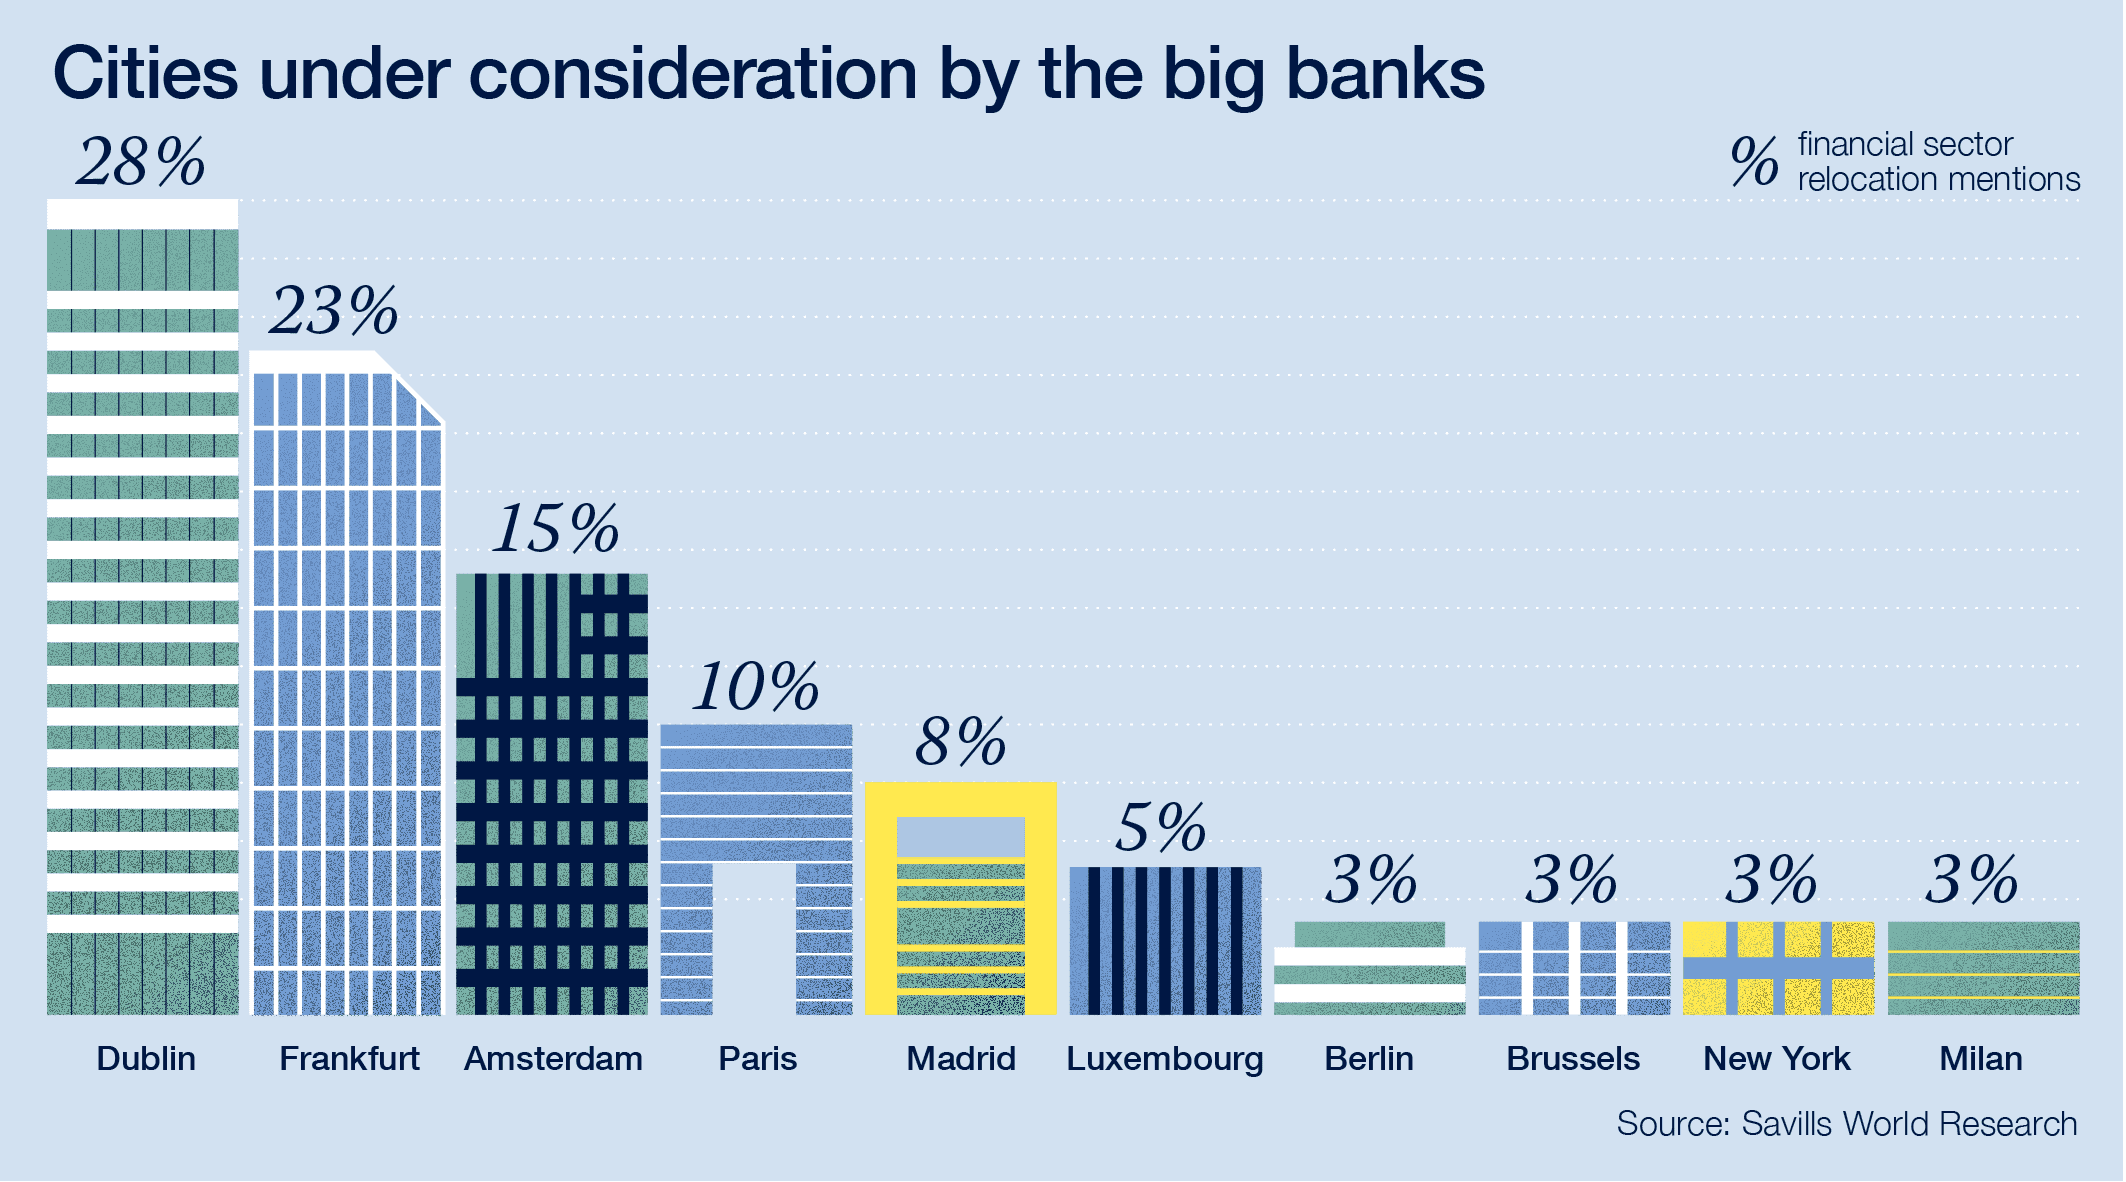 Cities under consideration by the big banks